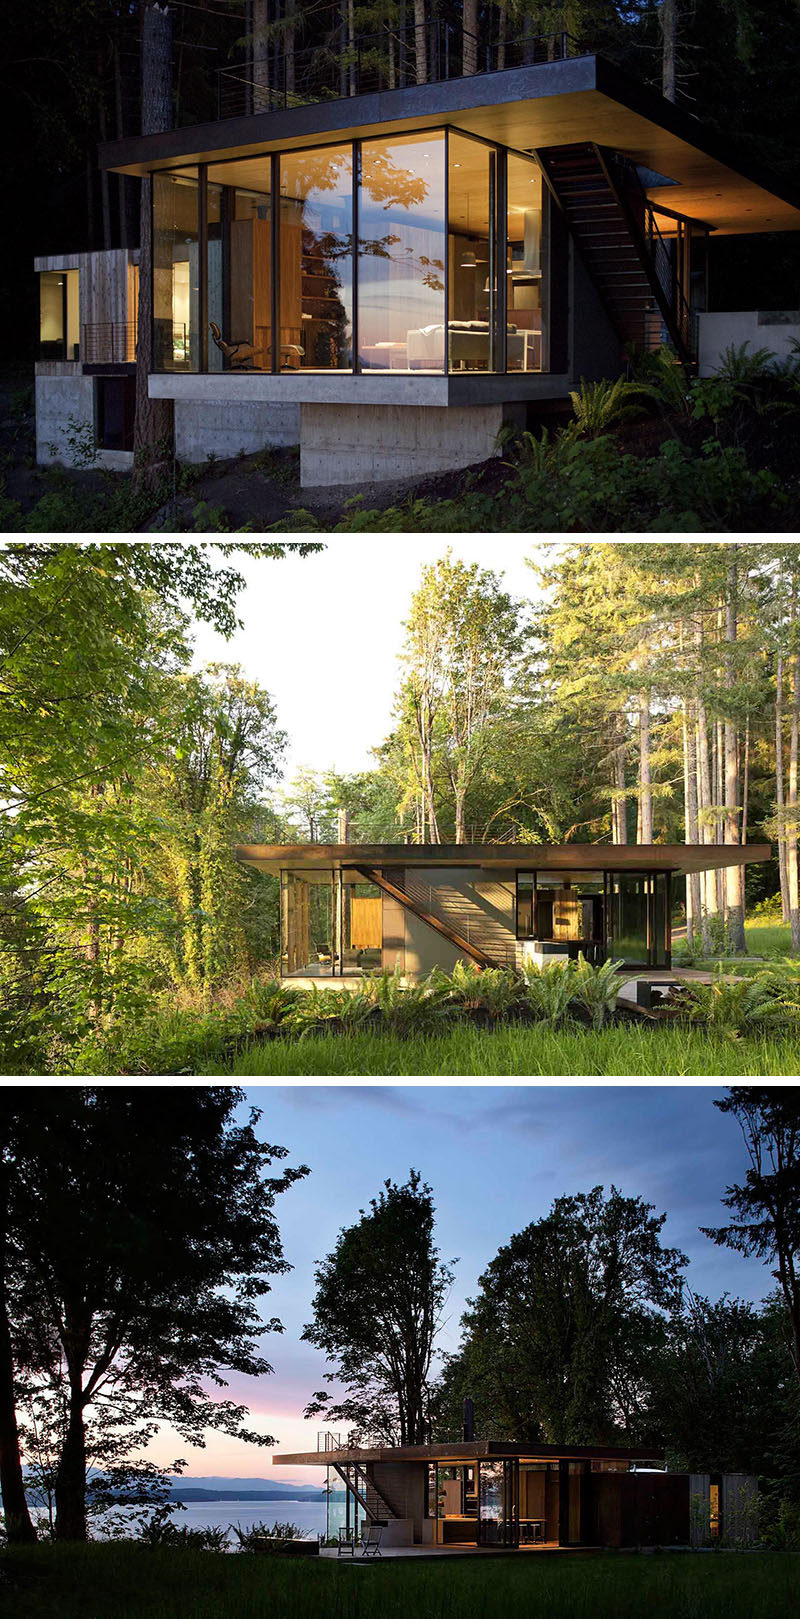 20 Awesome Examples Of Pacific Northwest Architecture // This home takes advantage of views of the ocean and the mountains and features many of the common characteristics of Pacific Northwest structures, like lots of glass.